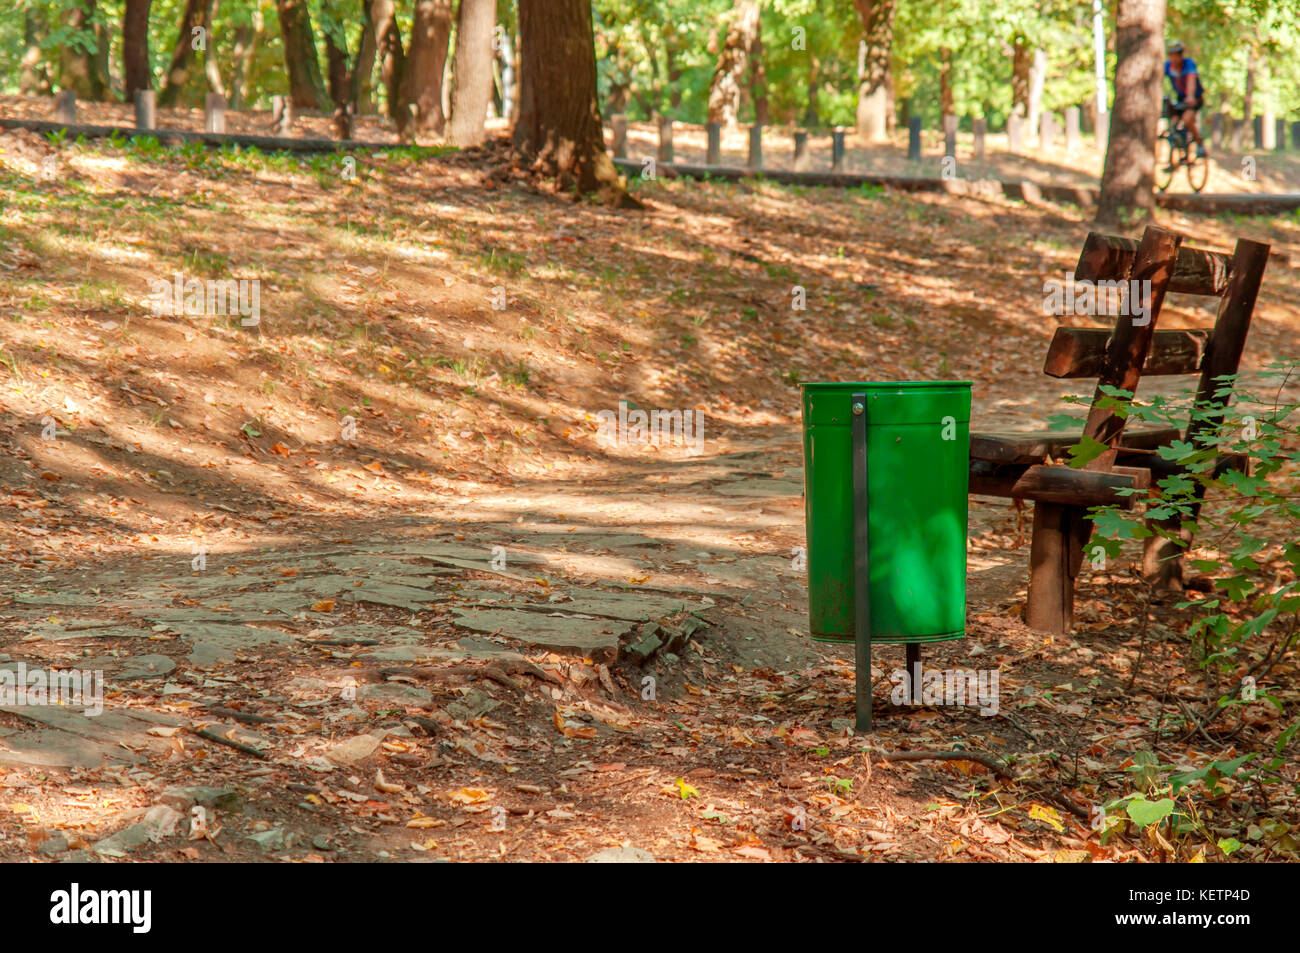 Trash can in forest with pathway for walking an running - Stock Image